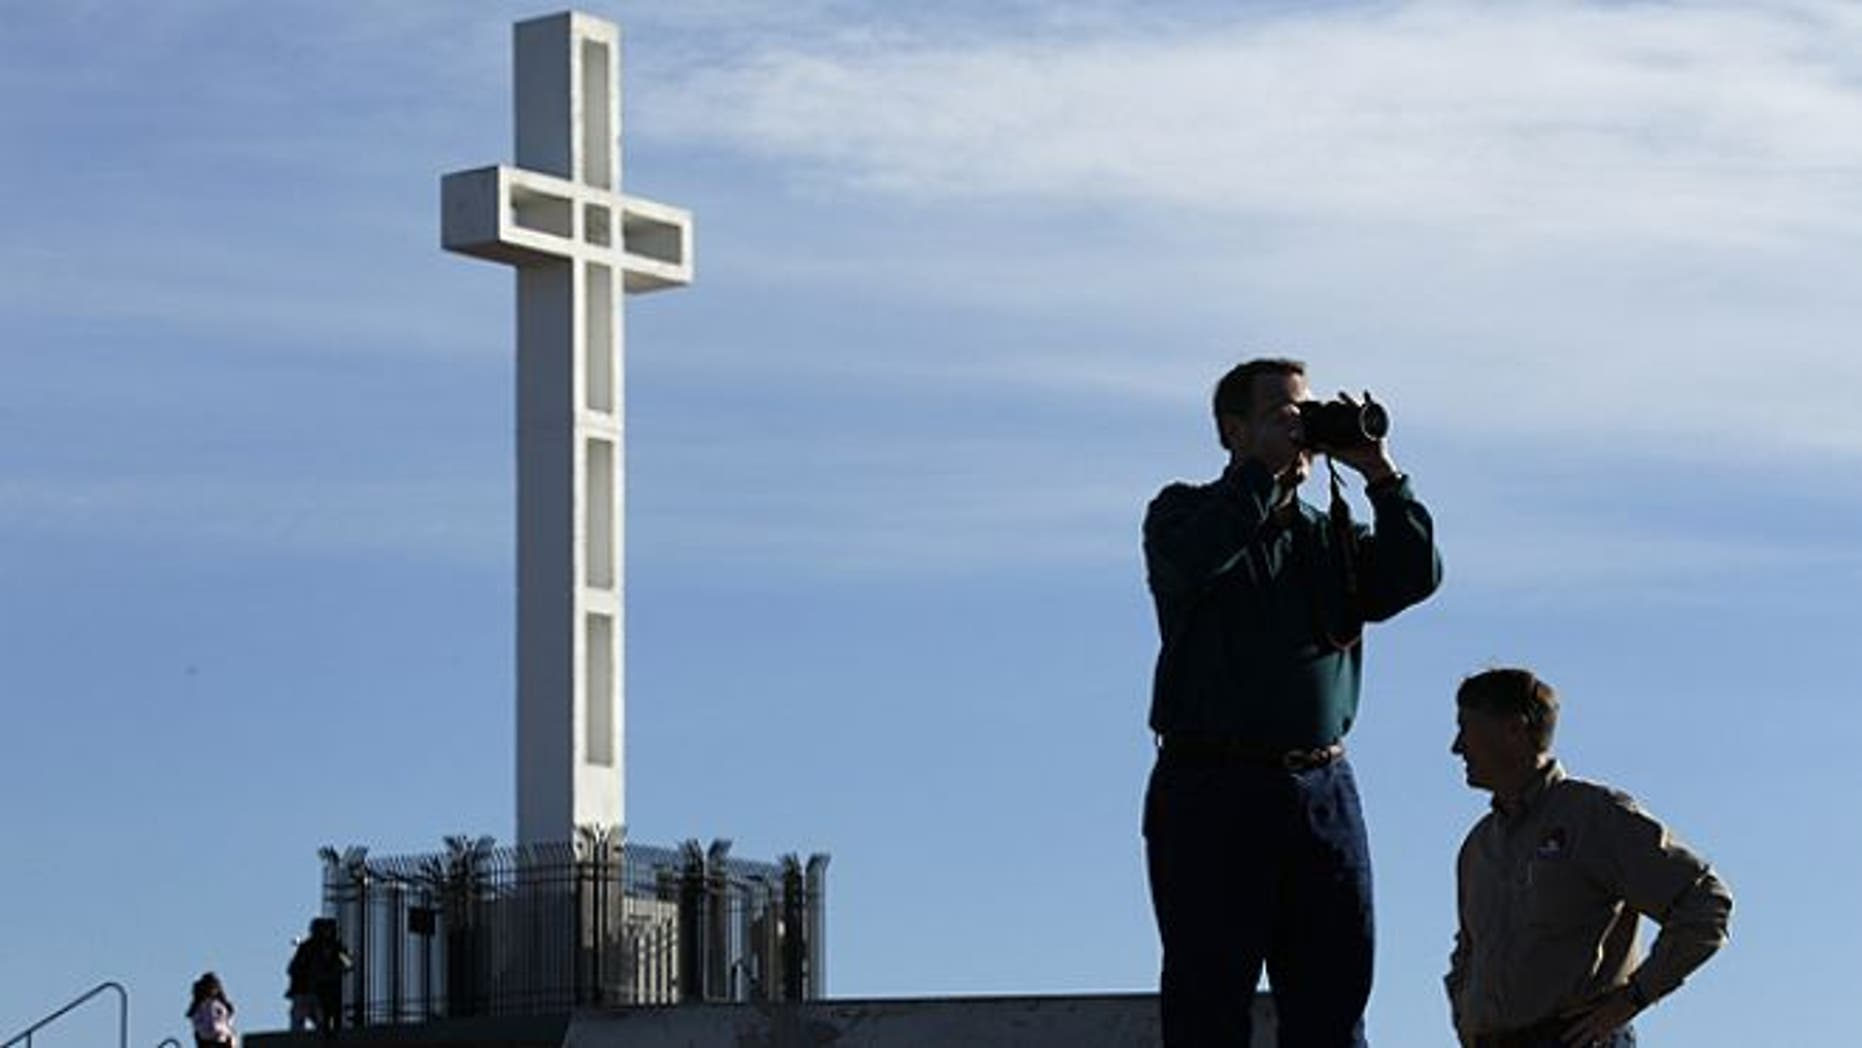 FILE: Jan. 4, 2011: Rev. John Fredericksen of Orlando, Fla., takes a picture in front of the war memorial cross on Mount Soledad in San Diego, alongside Burdette Streeter of San Diego.